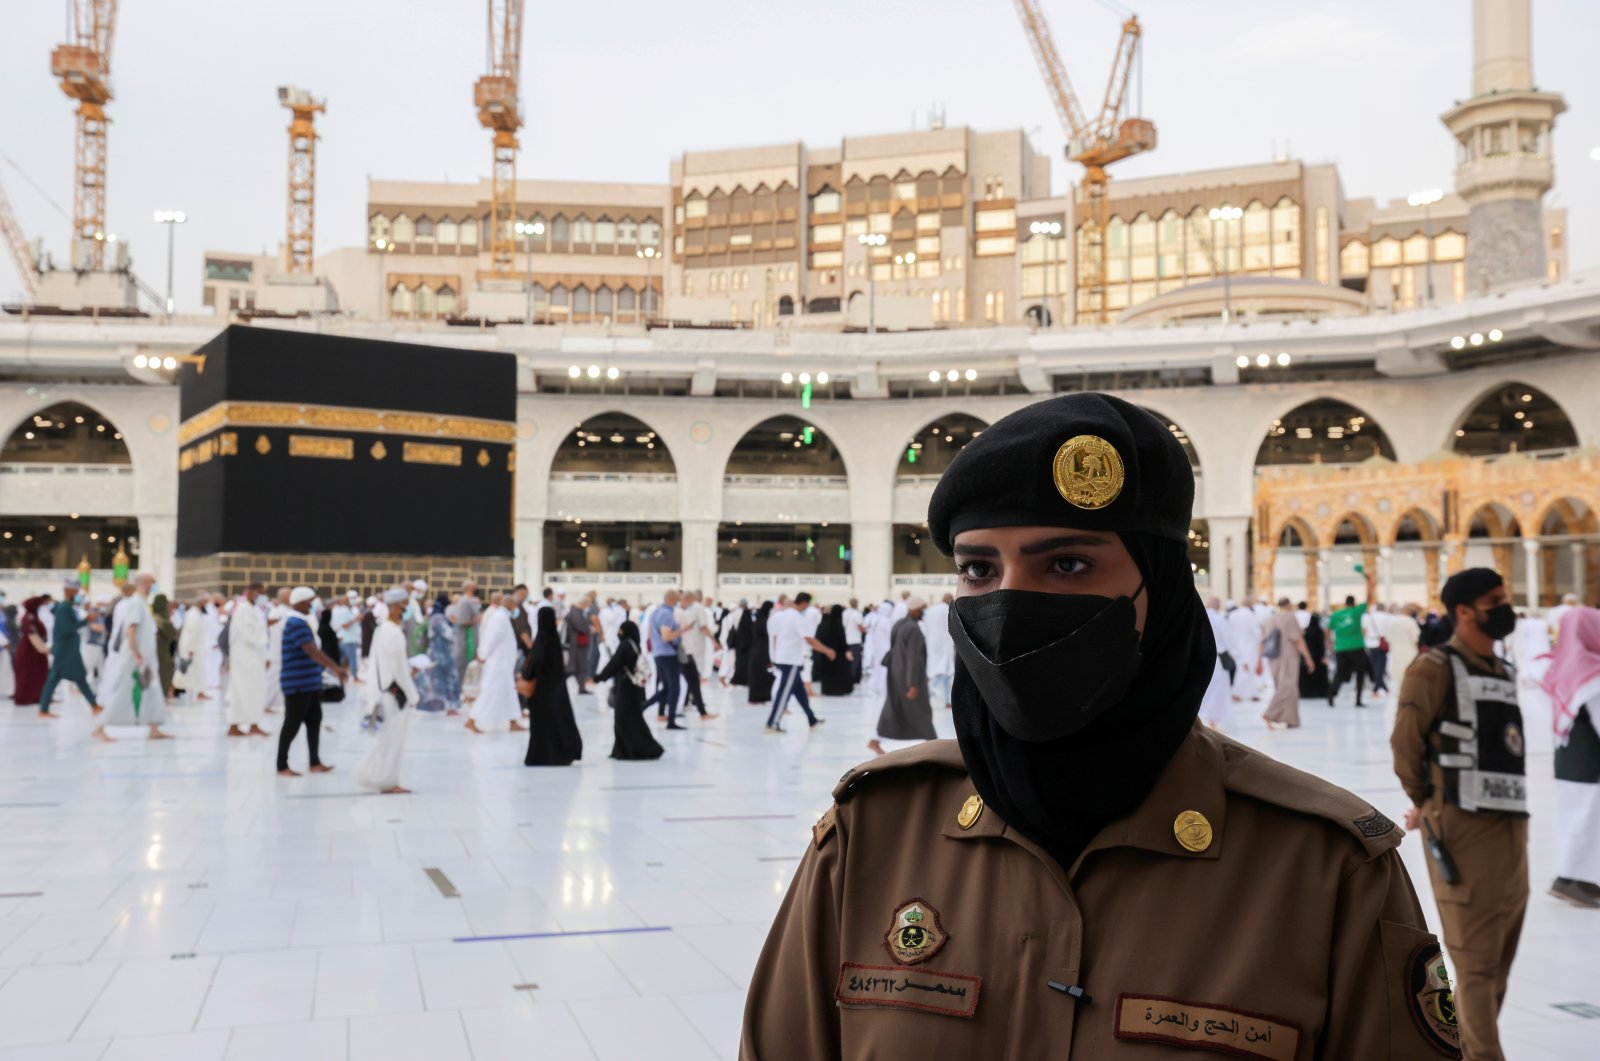 A female Saudi police officer stands guard during the annual hajj pilgrimage in the holy city of Mecca, Saudi Arabia, July 20, 2021. (Reuters File Photo)